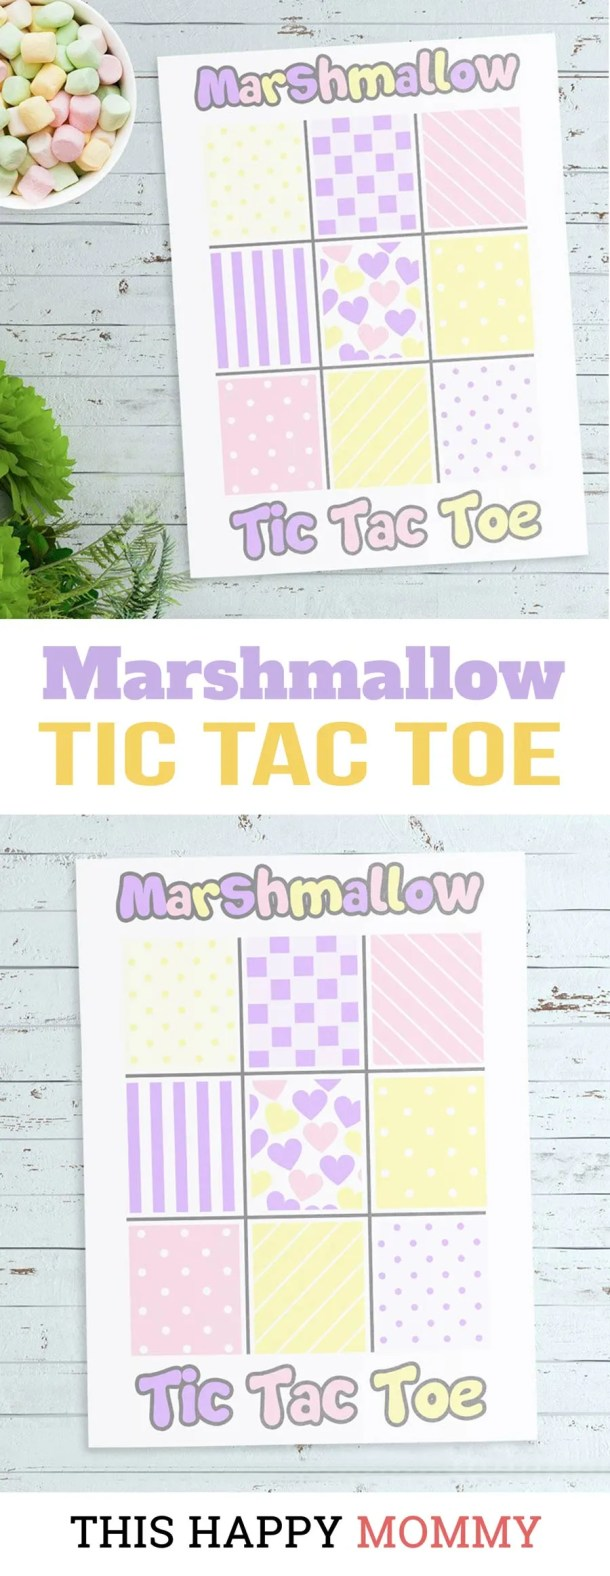 If you love family fun time, this is the perfect game for you! Marshmallow Tic Tac Toe is a fun and tasty version of Tic Tac Toe. You can download your own copy for FREE!DIY gifts | family game night | family time | DIY crafts | last minute gifts | gifts for kids | #gift #diy #game #familytime | thishappymommy.com